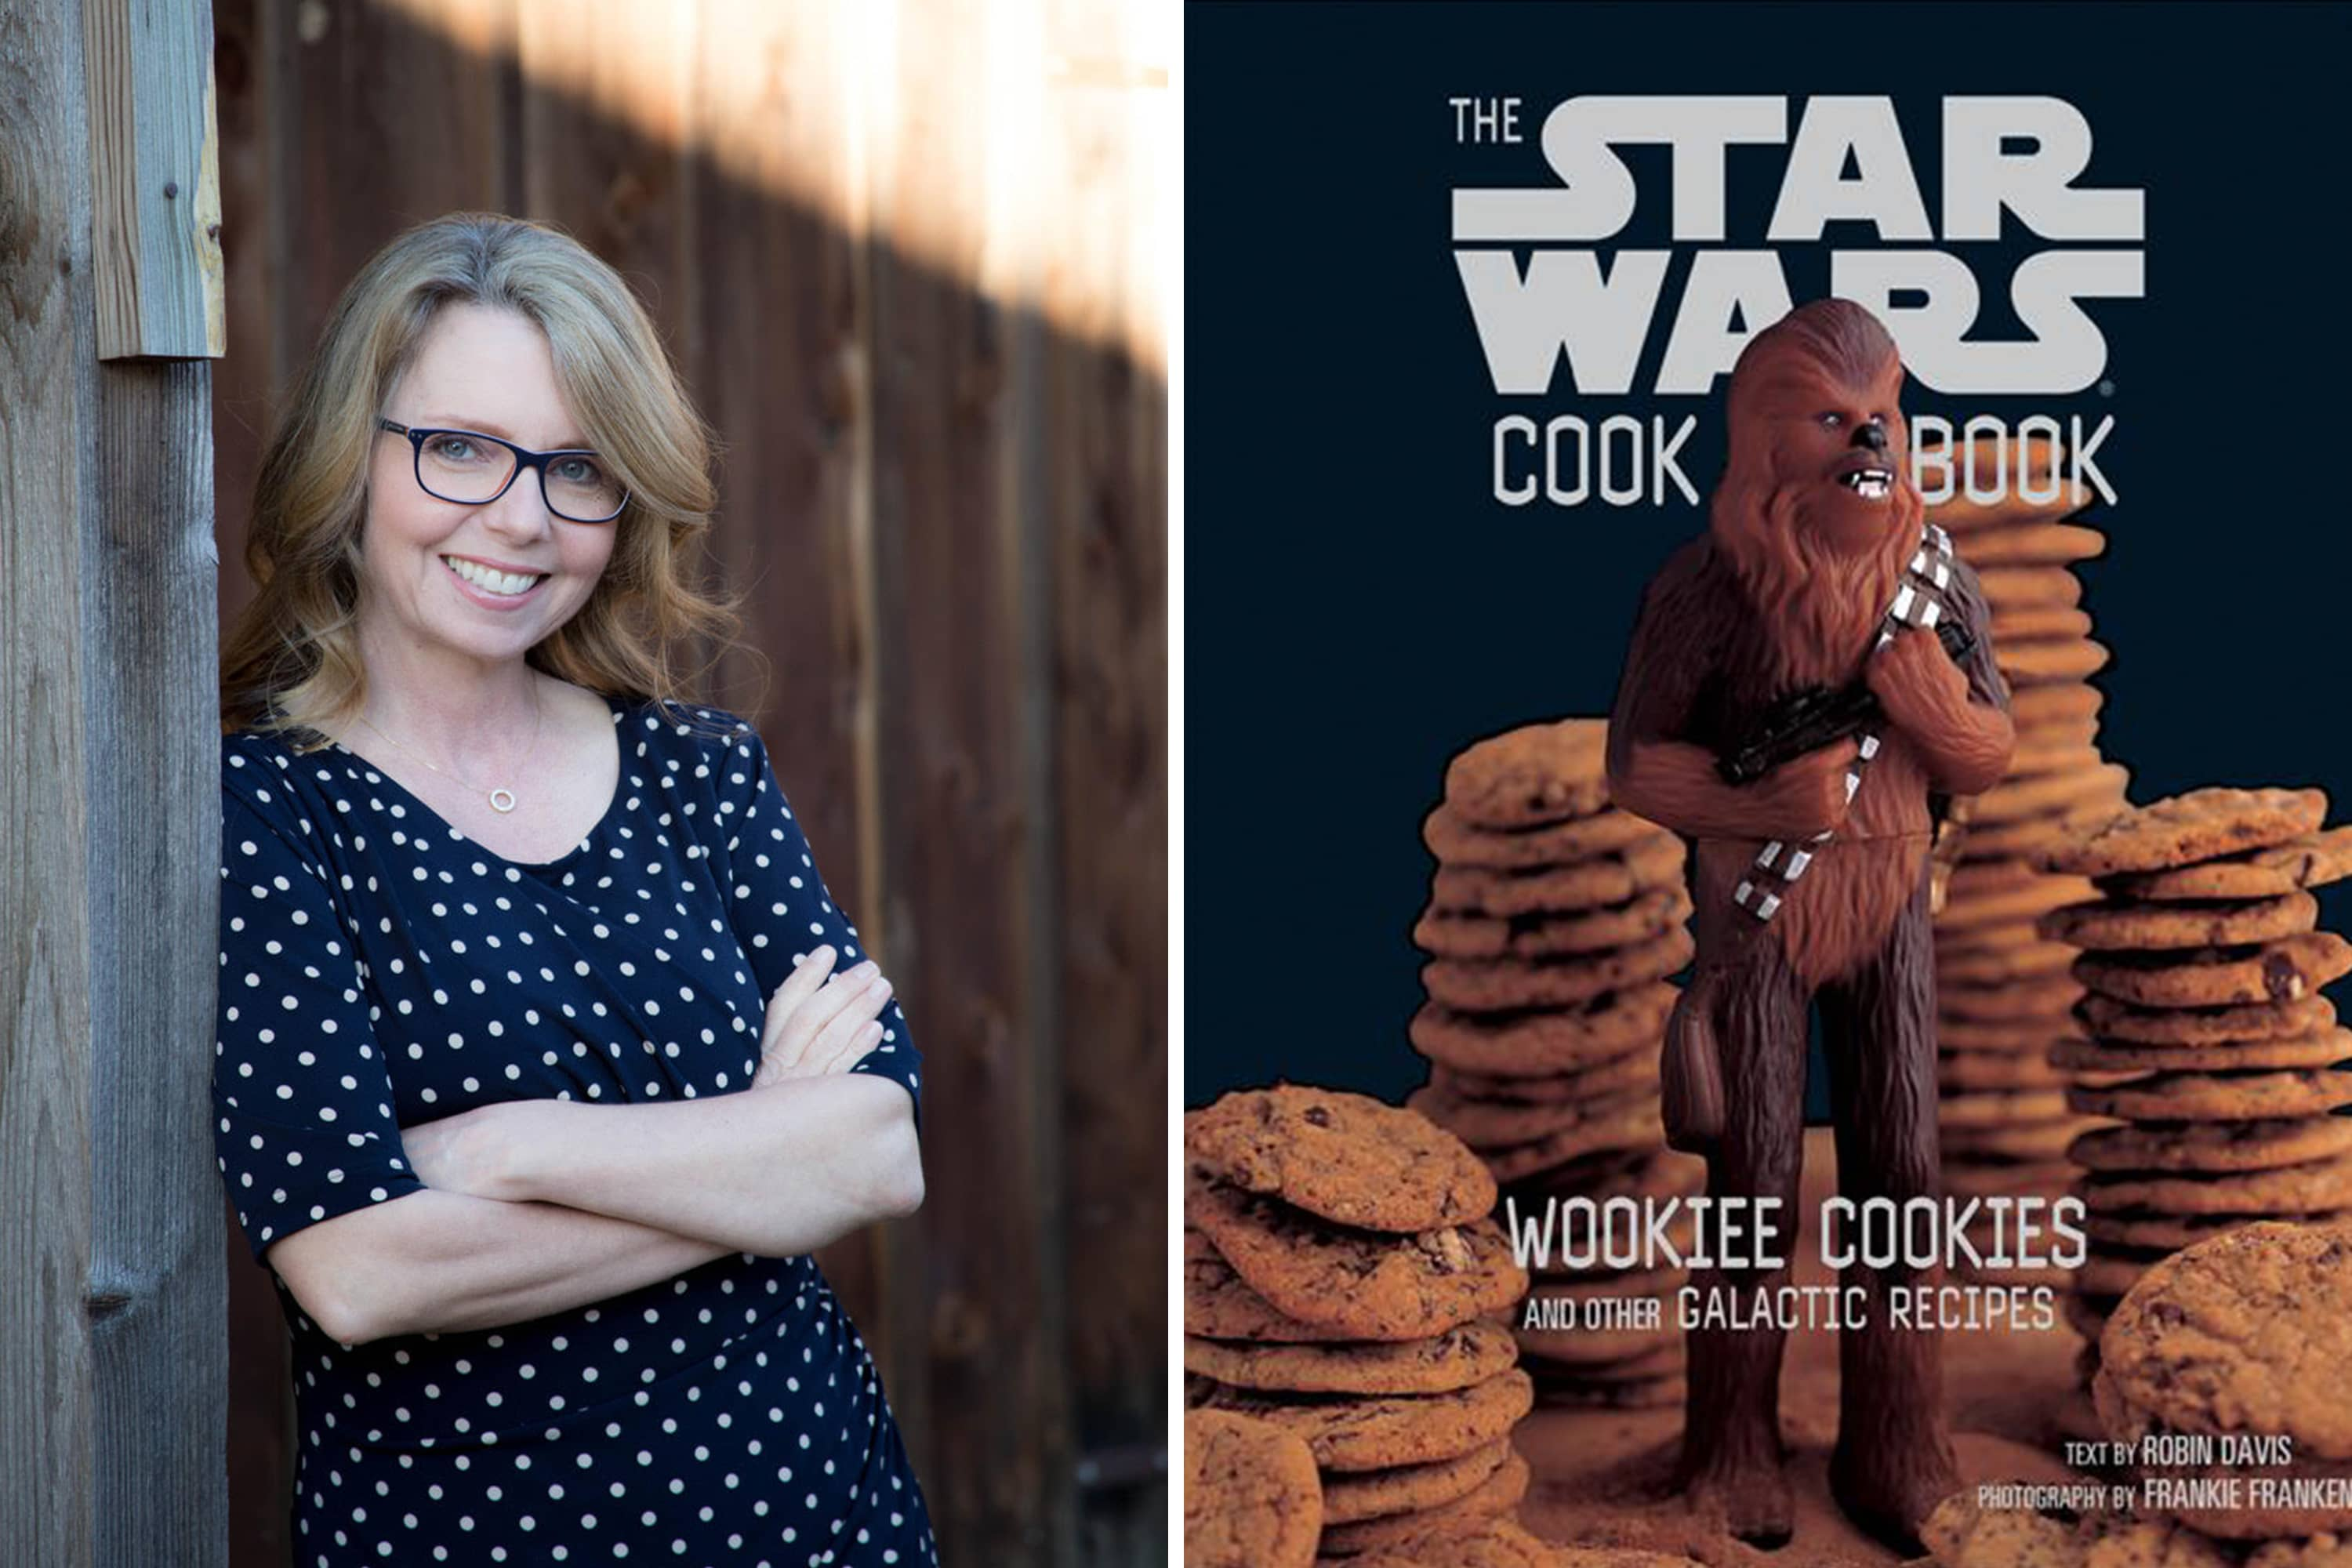 More Than Two Decades Later, Robin Davis' Star Wars Cookbook Delights Fans of All Ages